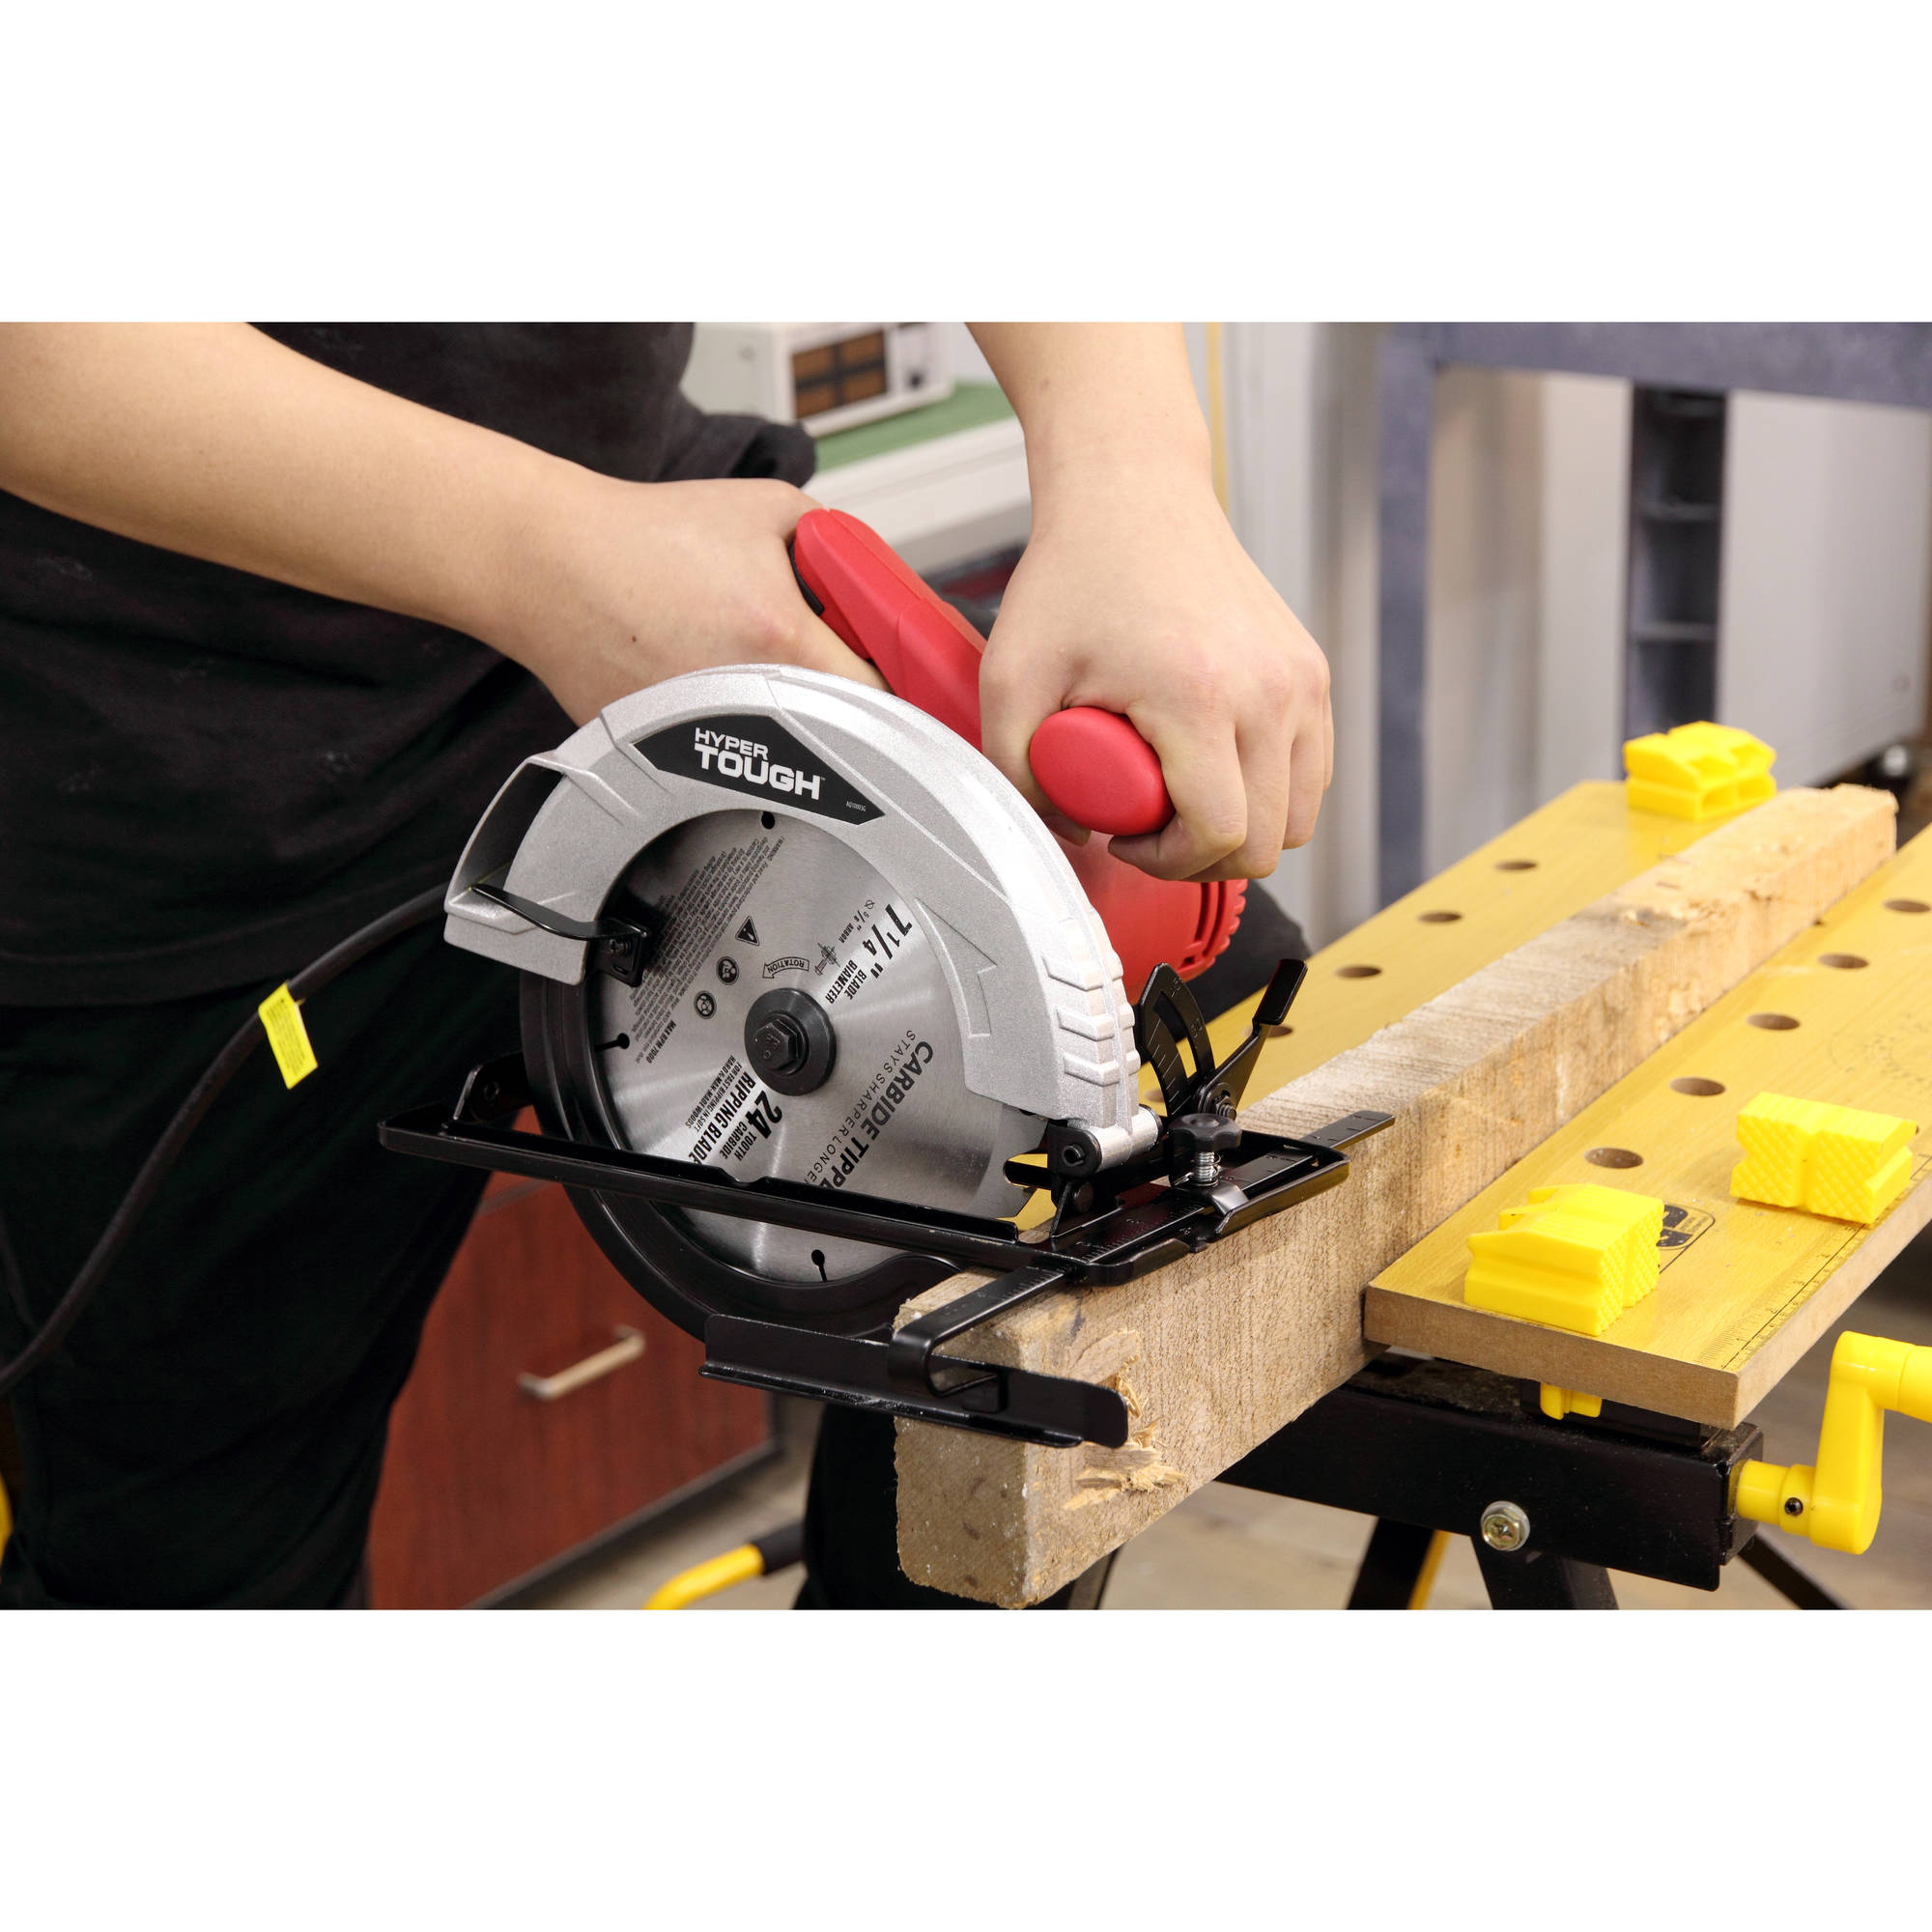 Hyper tough 12a 7 14 circular saw walmart keyboard keysfo Gallery